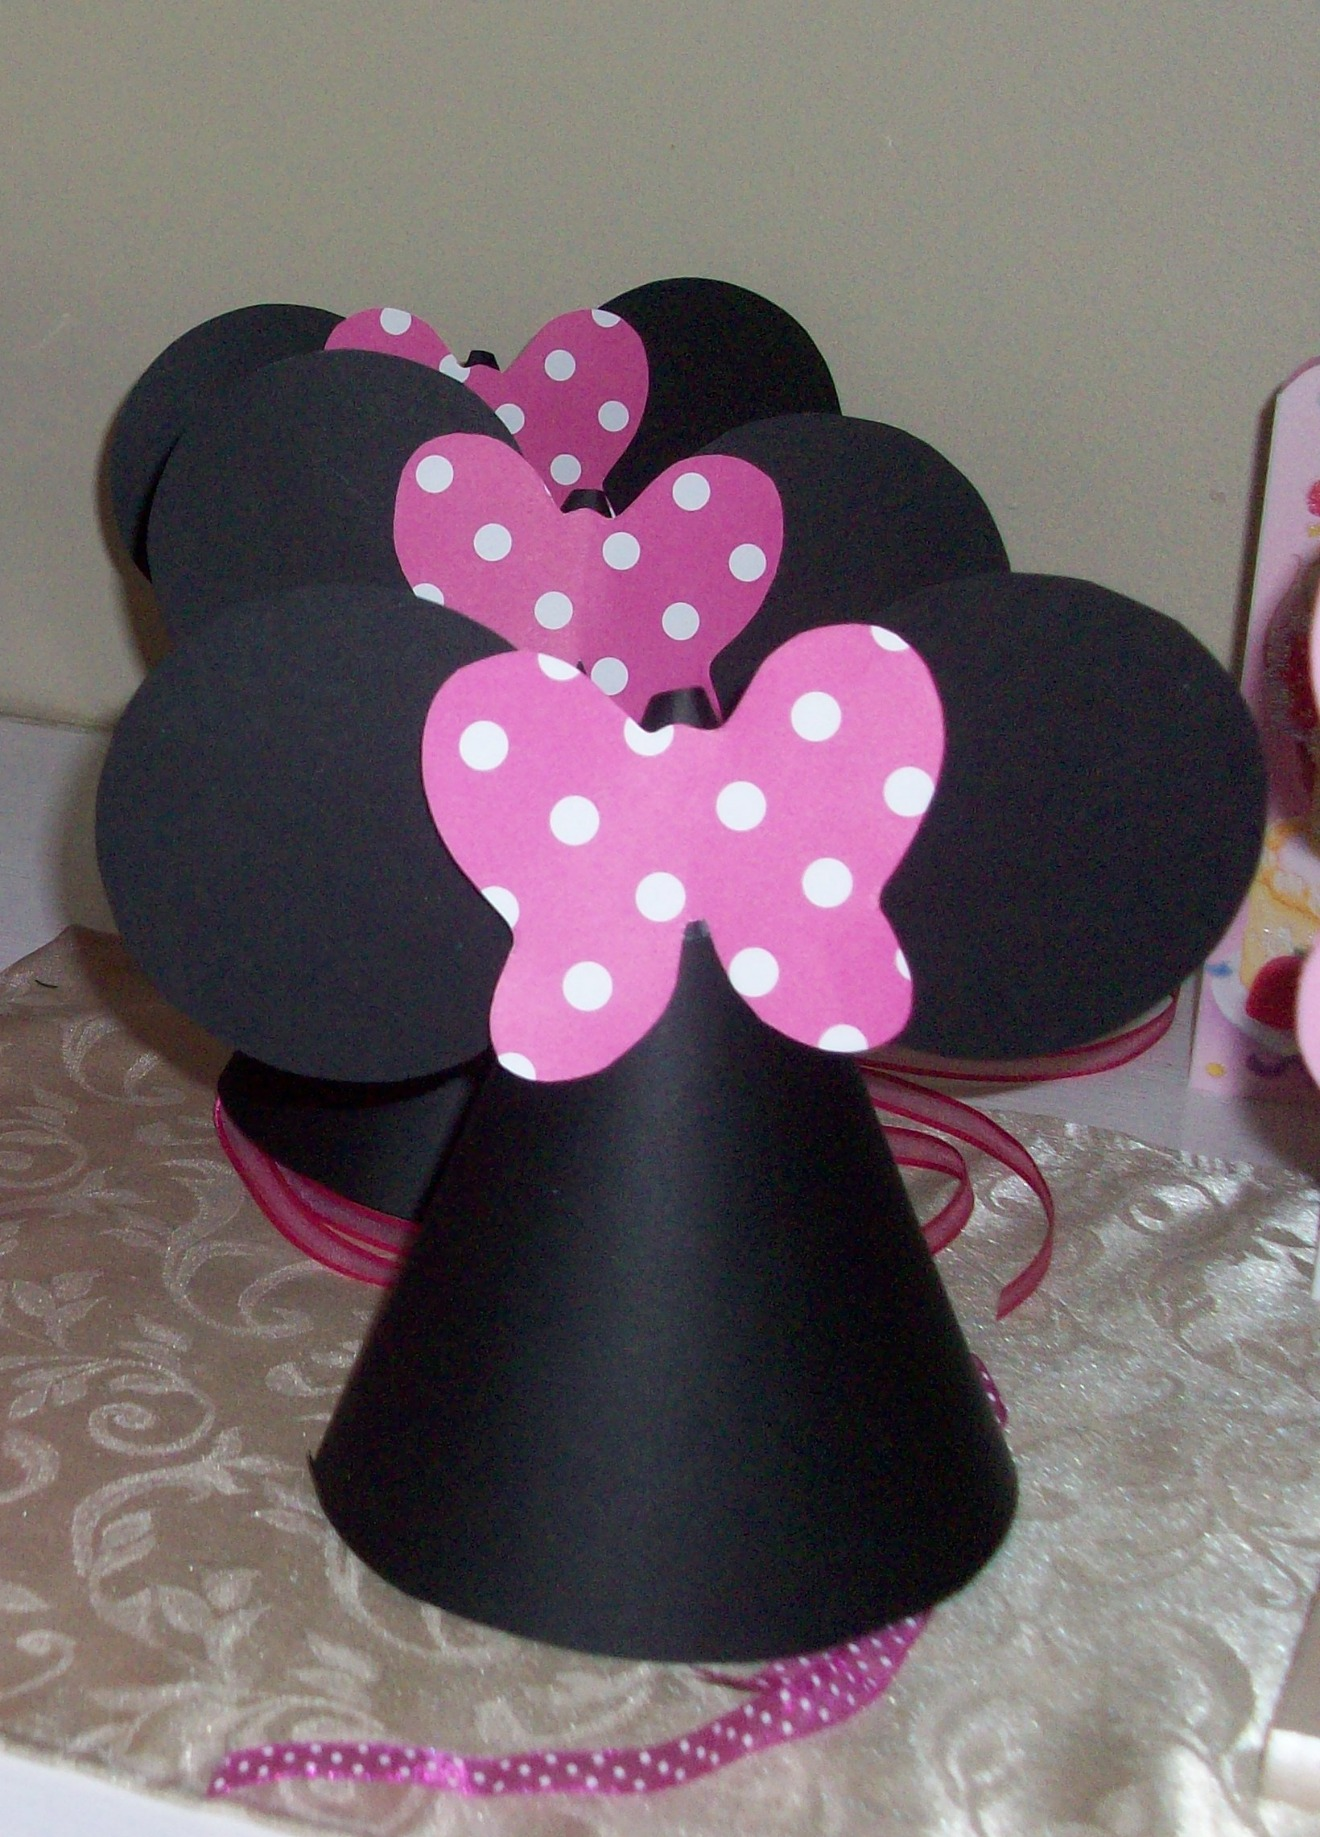 DIY Tutorial from A Catch My Party Member - How to Make Minnie Mouse ...